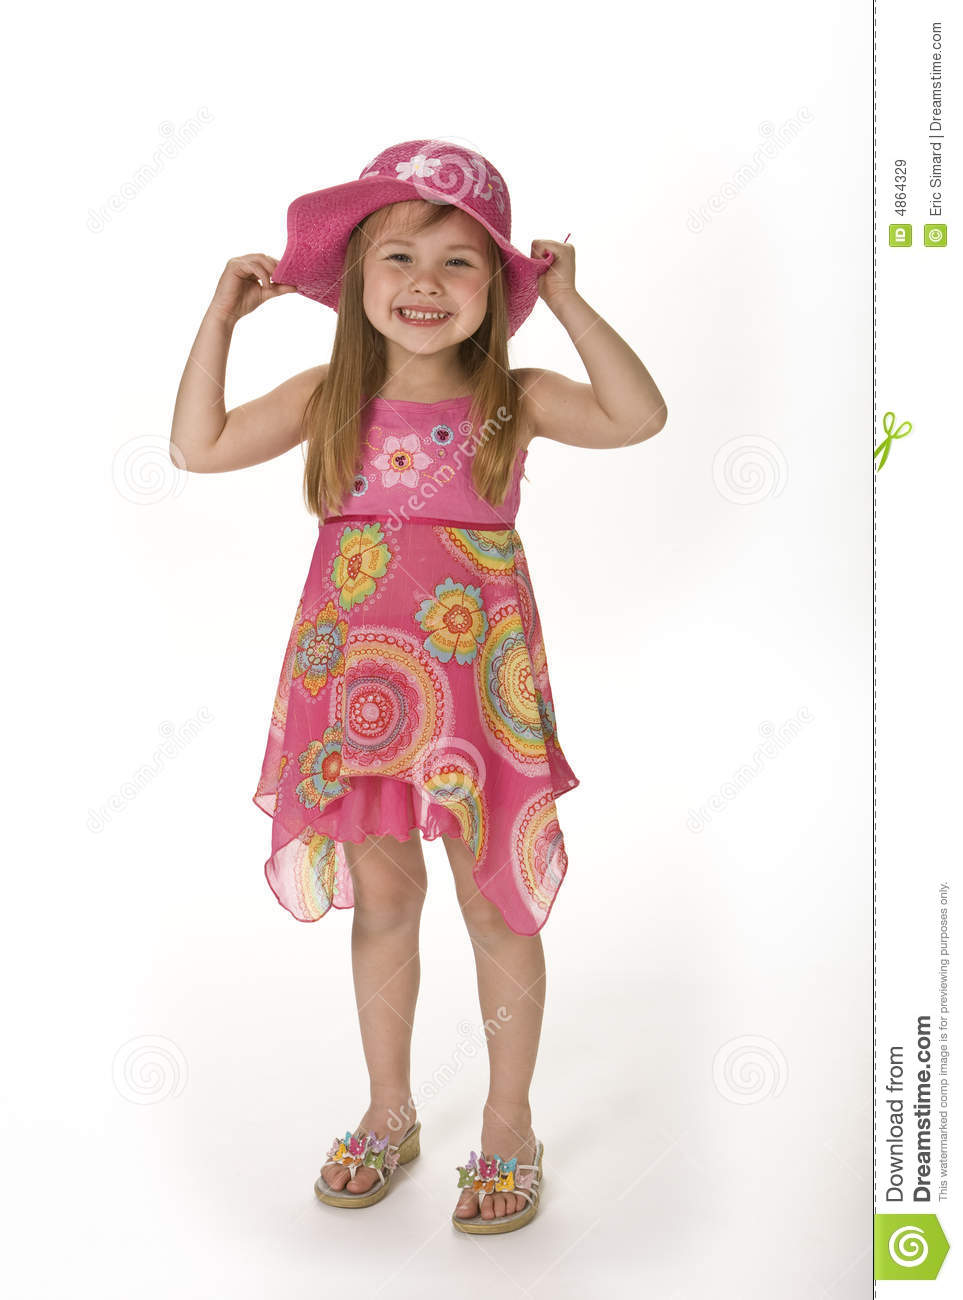 d48a88b1a89 Cute Girl in Summer Wear stock image. Image of girl, happiness - 4864329